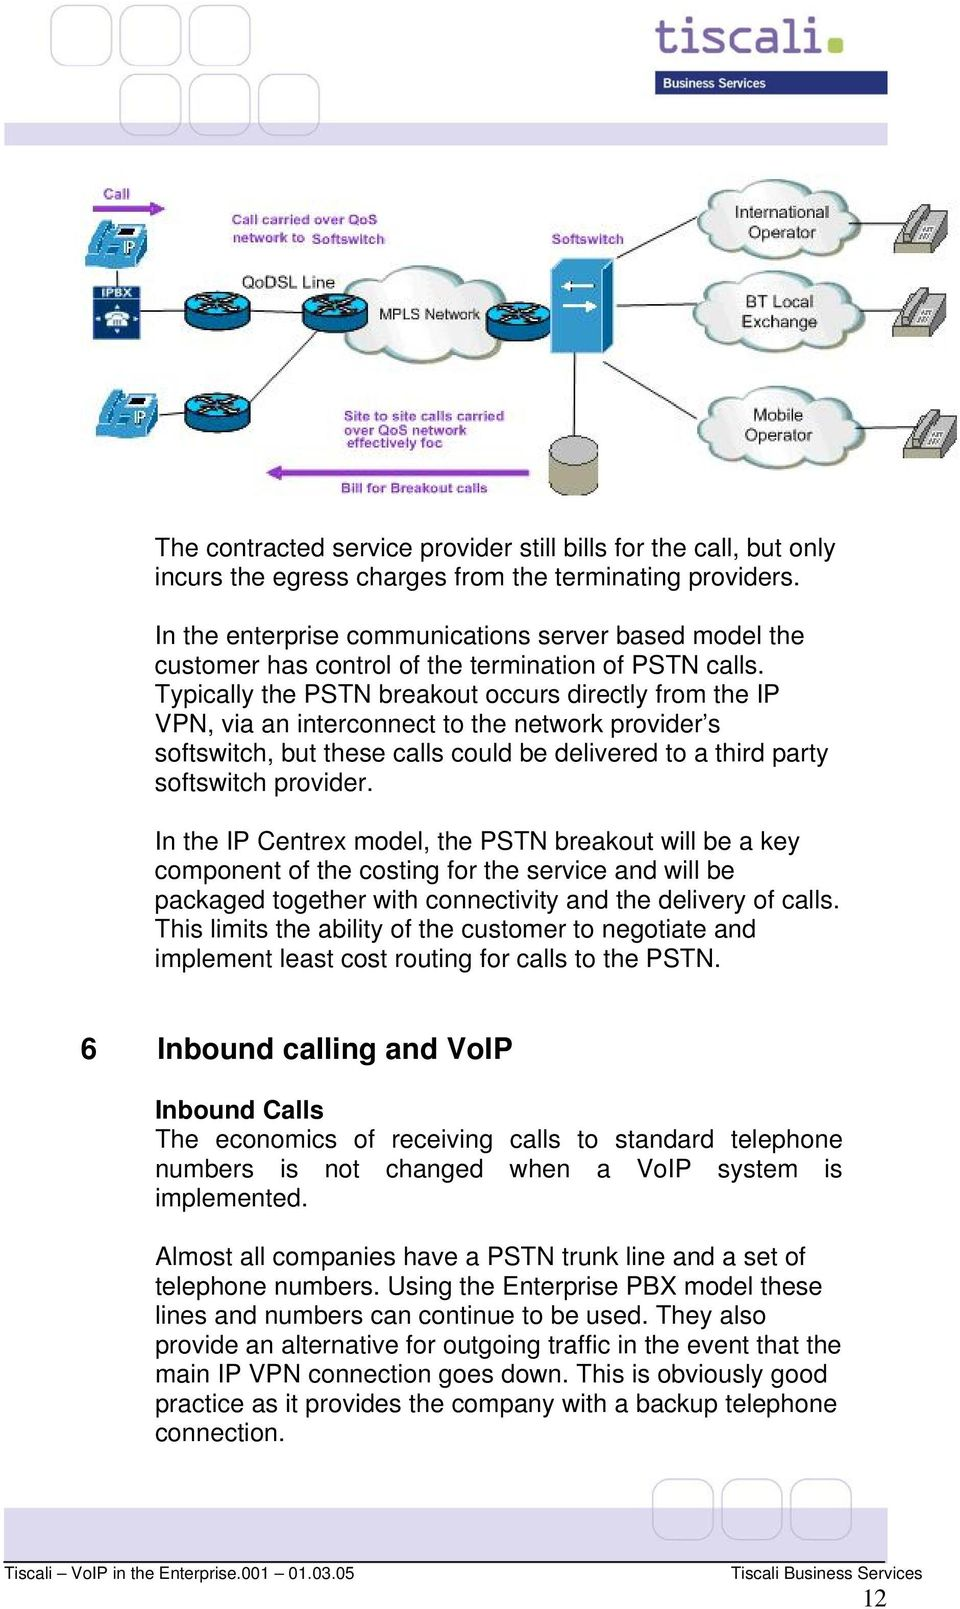 Typically the PSTN breakout occurs directly from the IP VPN, via an interconnect to the network provider s softswitch, but these calls could be delivered to a third party softswitch provider.